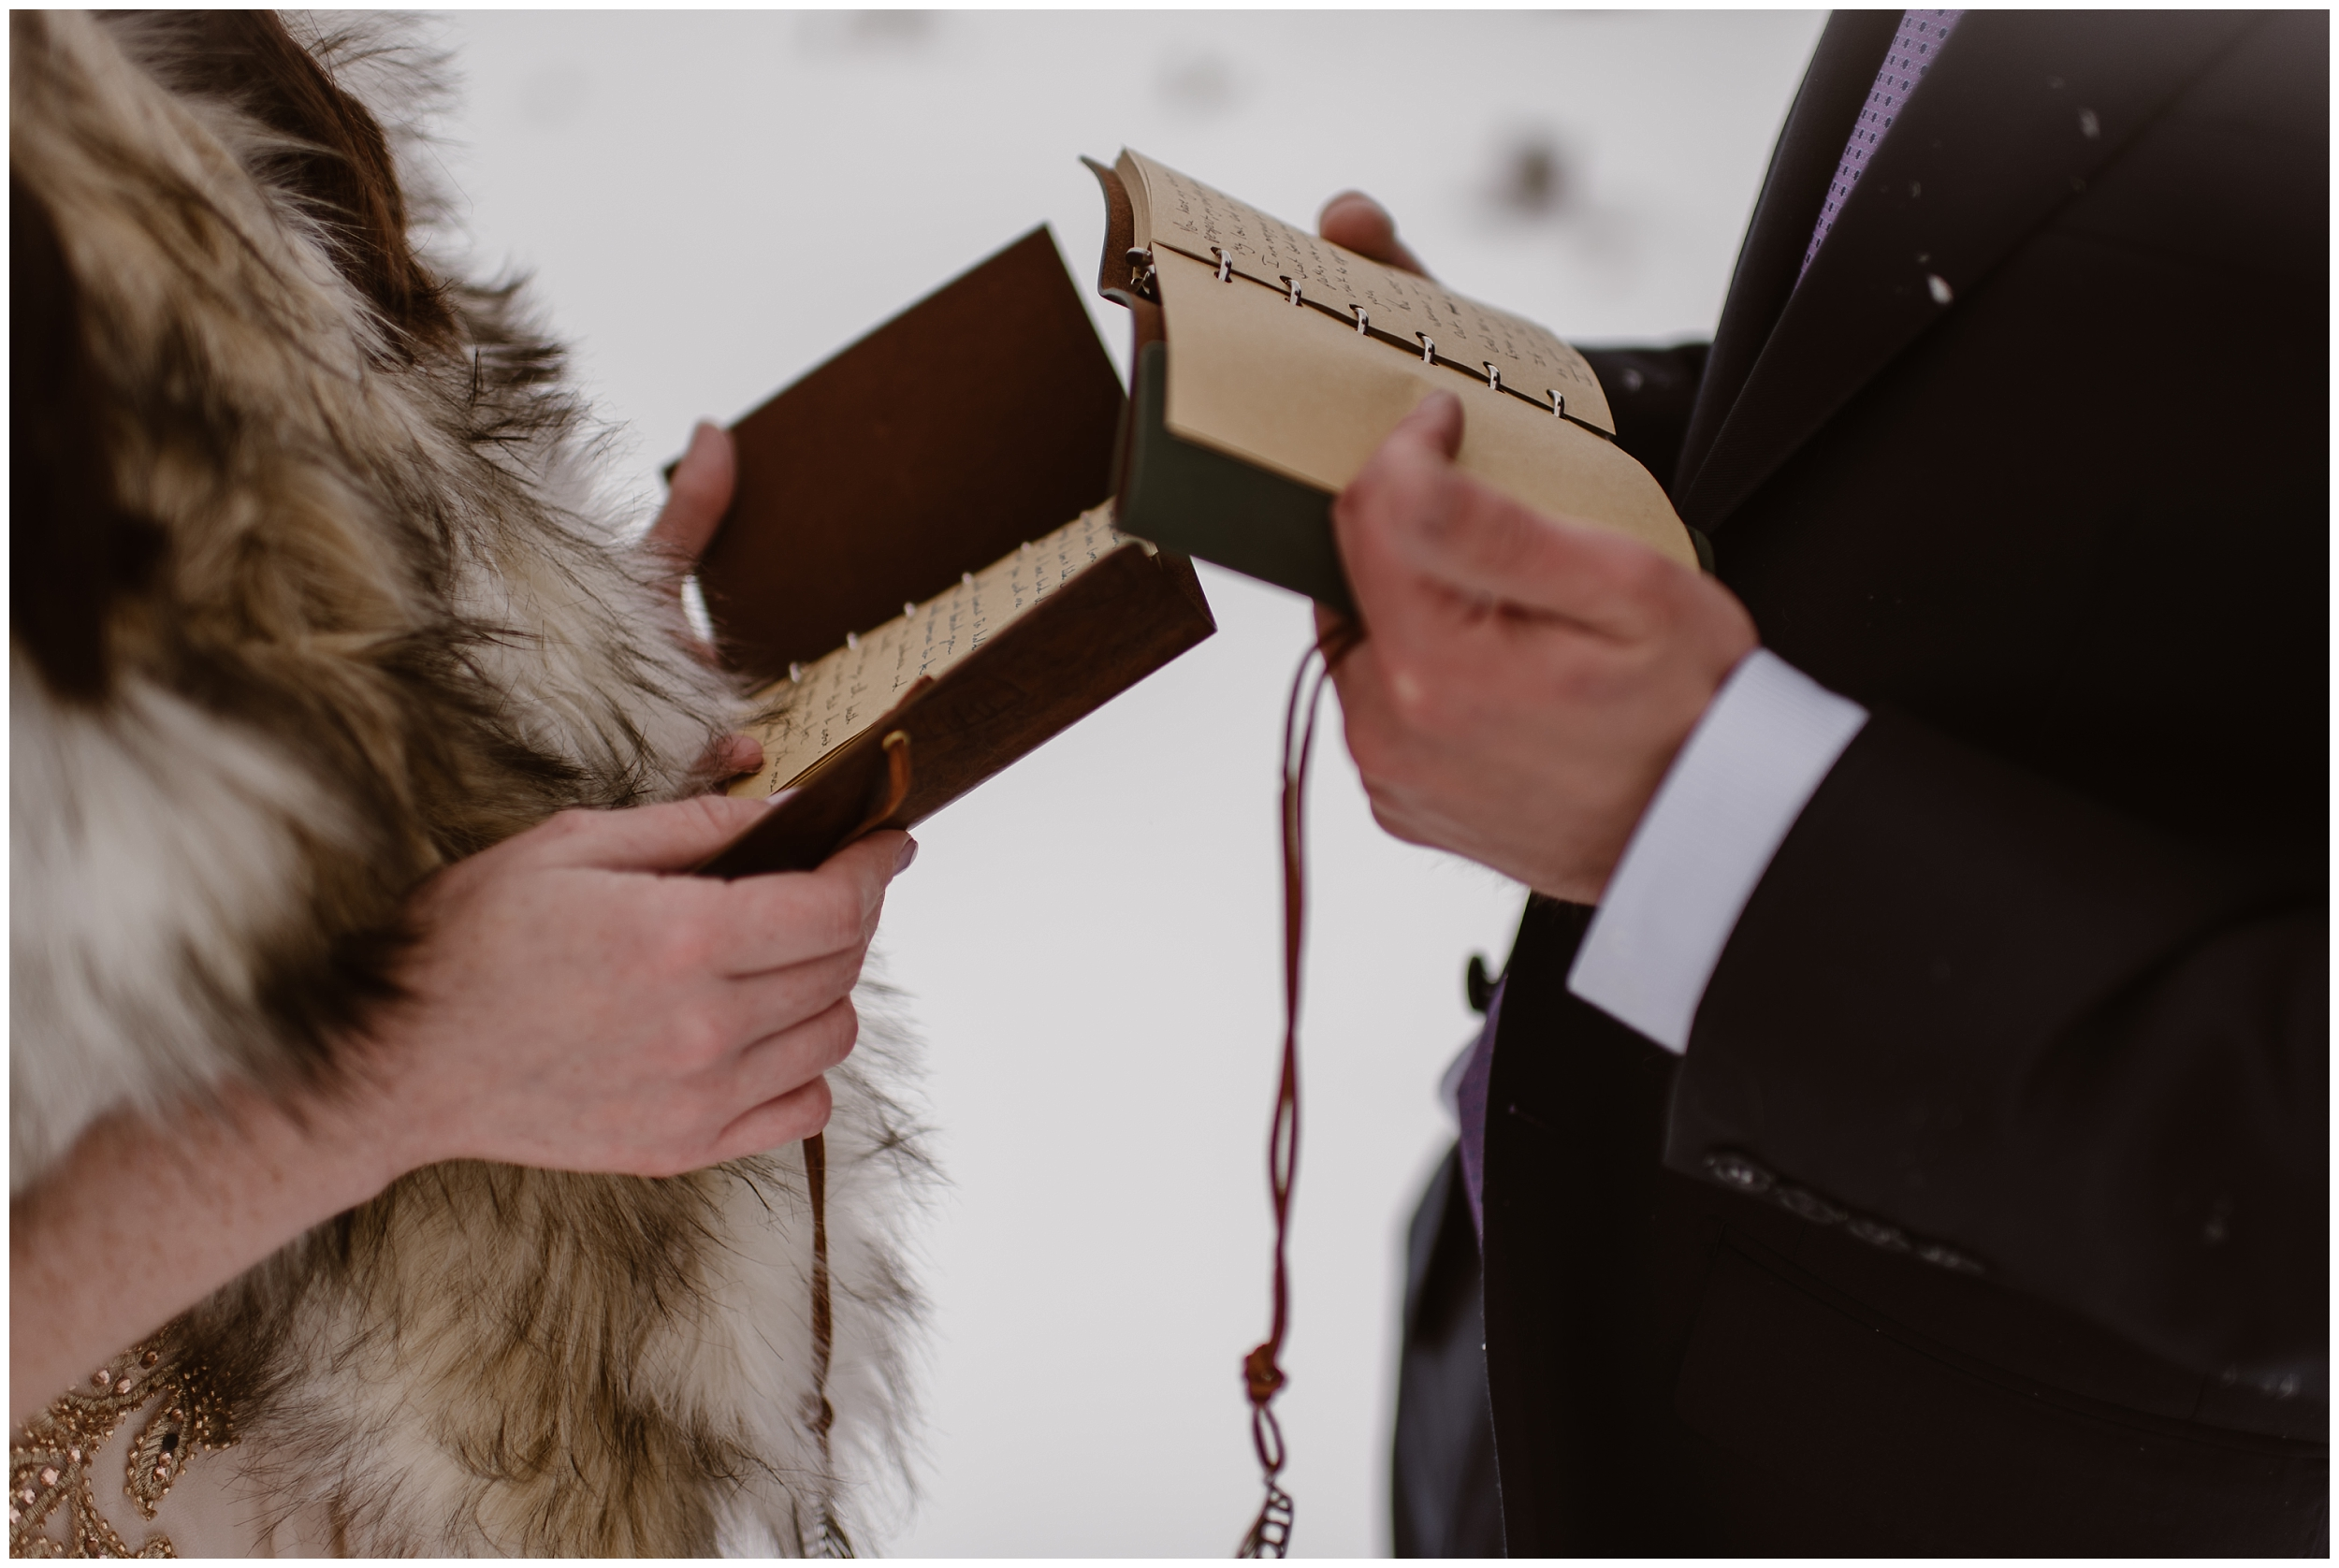 A bride and groom hold their leather, vow books as they read their vows during their marriage ceremony. This image, captured by Adventure Instead, a photographer who specializes in small wedding photos, shows a closeup on the bride and grooms hands as they read through their handwritten vows.